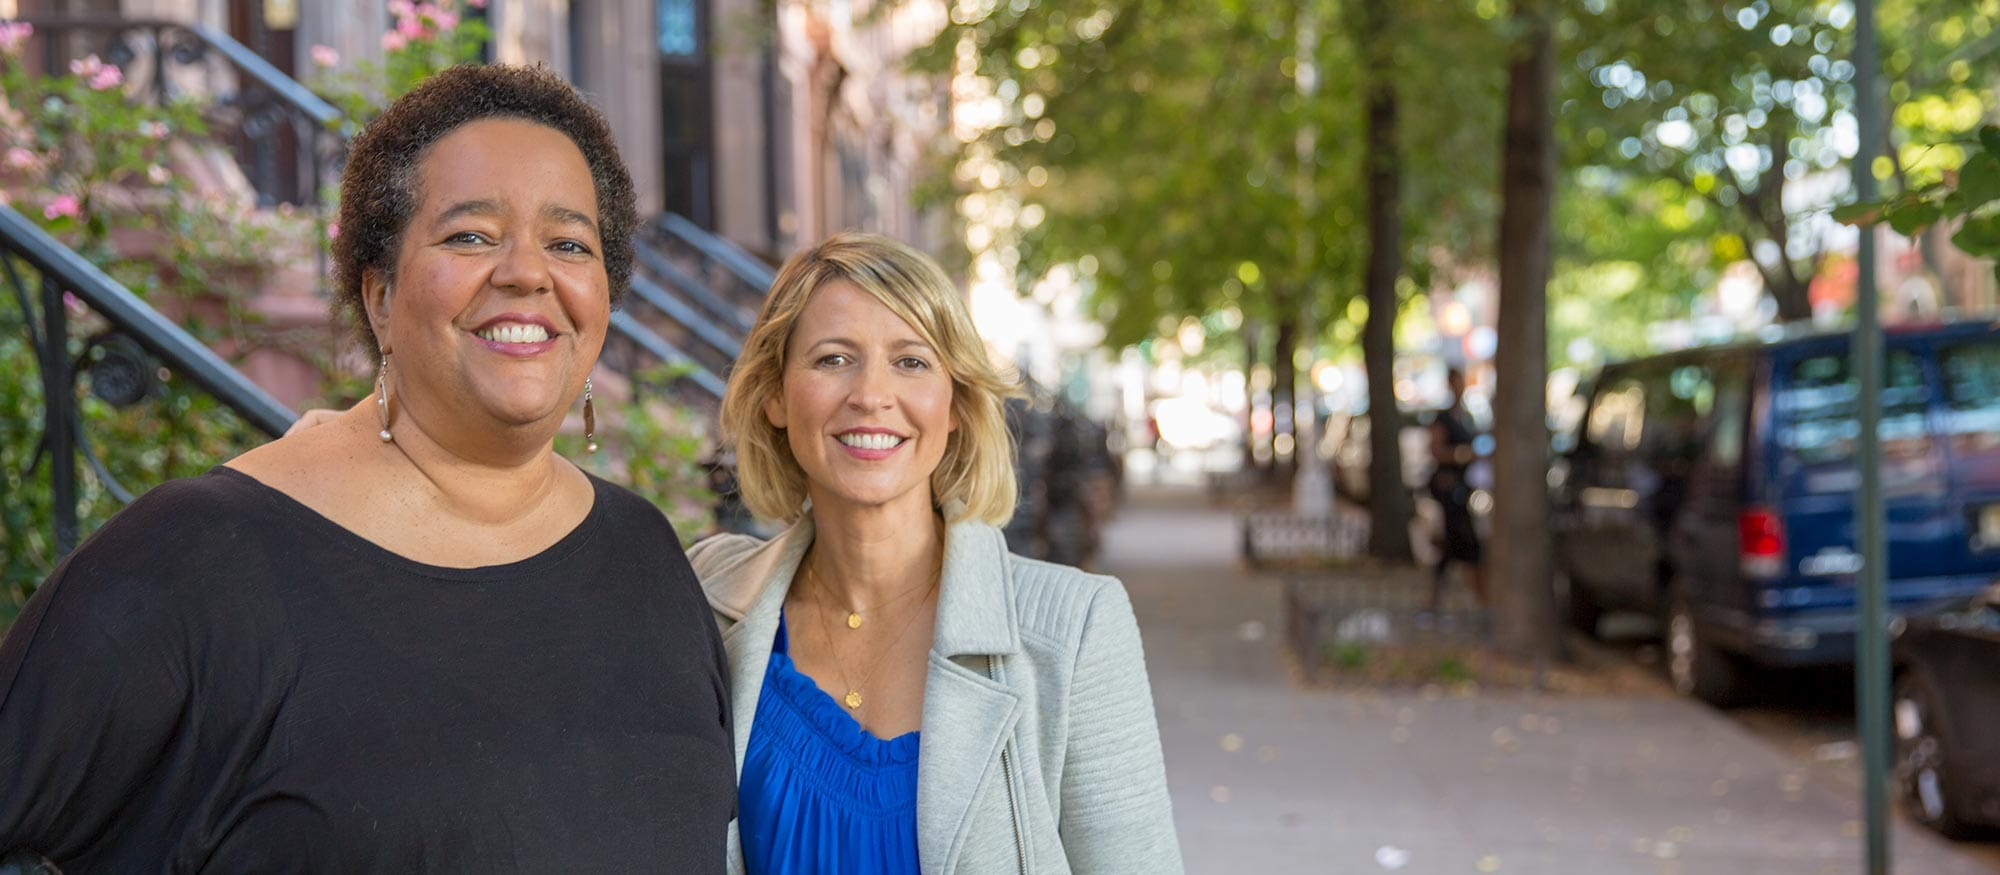 Bed Stuy - Samantha Brown's Places To Love - PBS